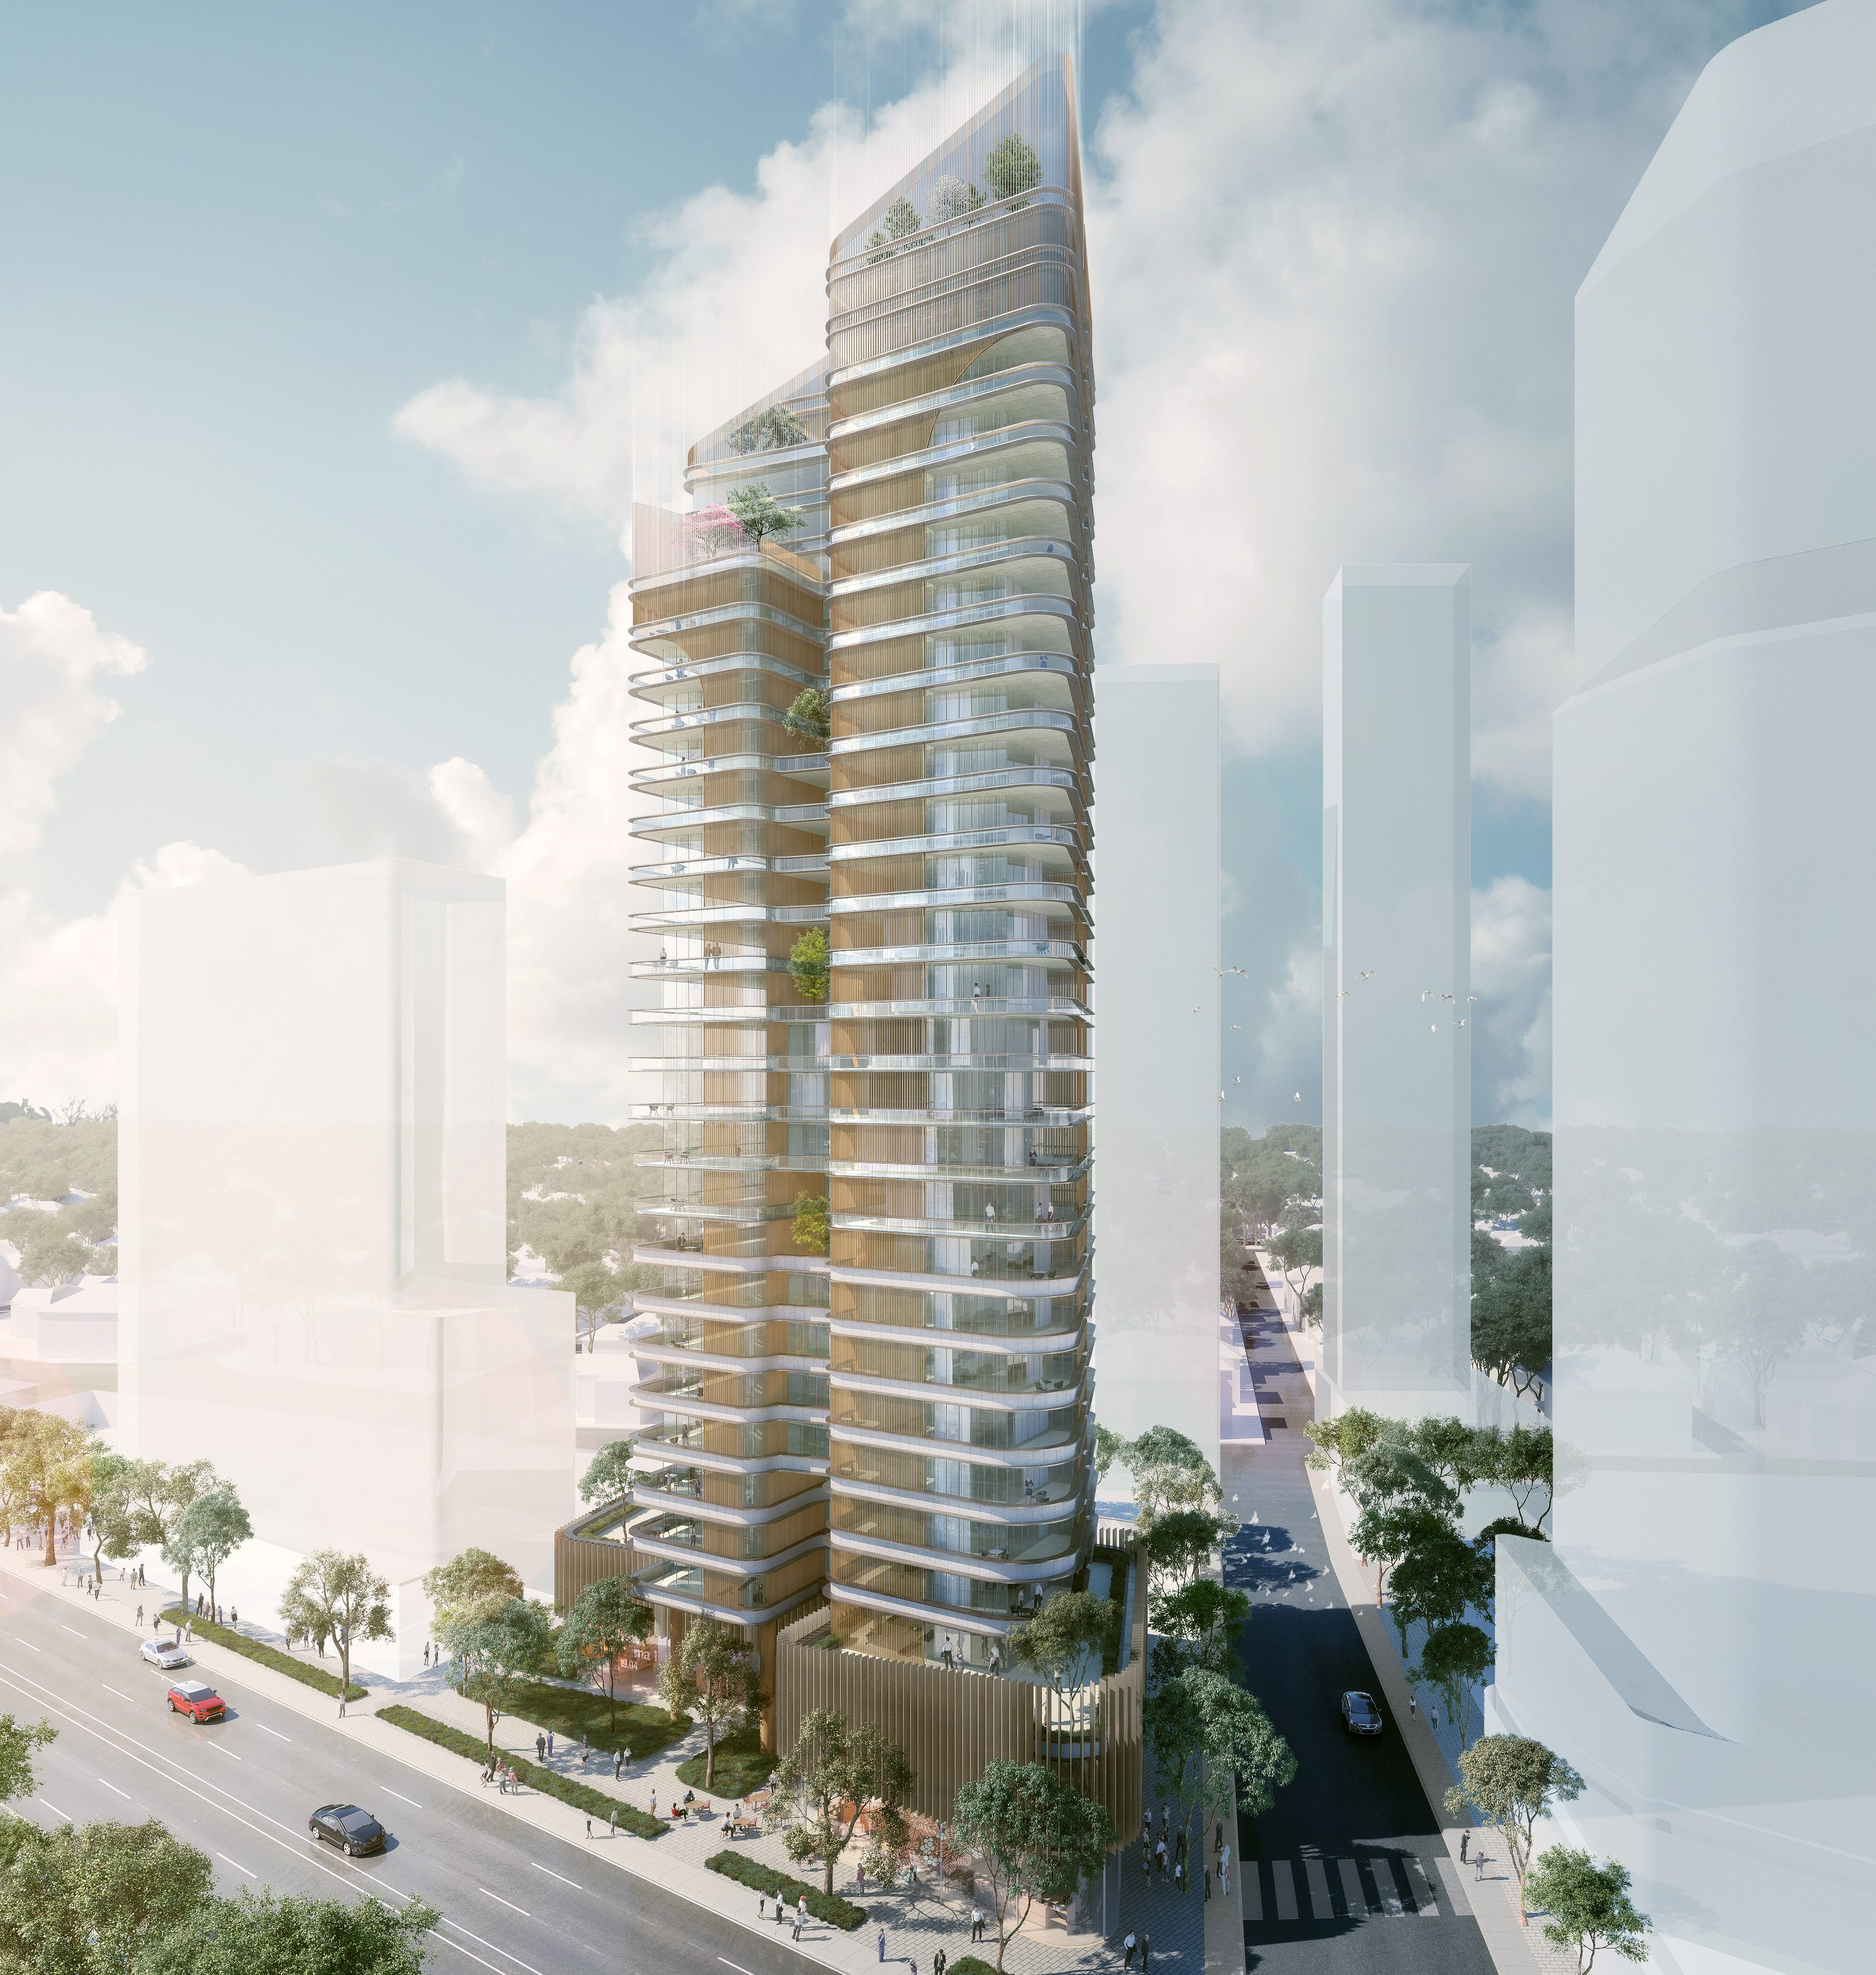 Developer Goldfields has been approved for its $175m residential tower in Chatswood.